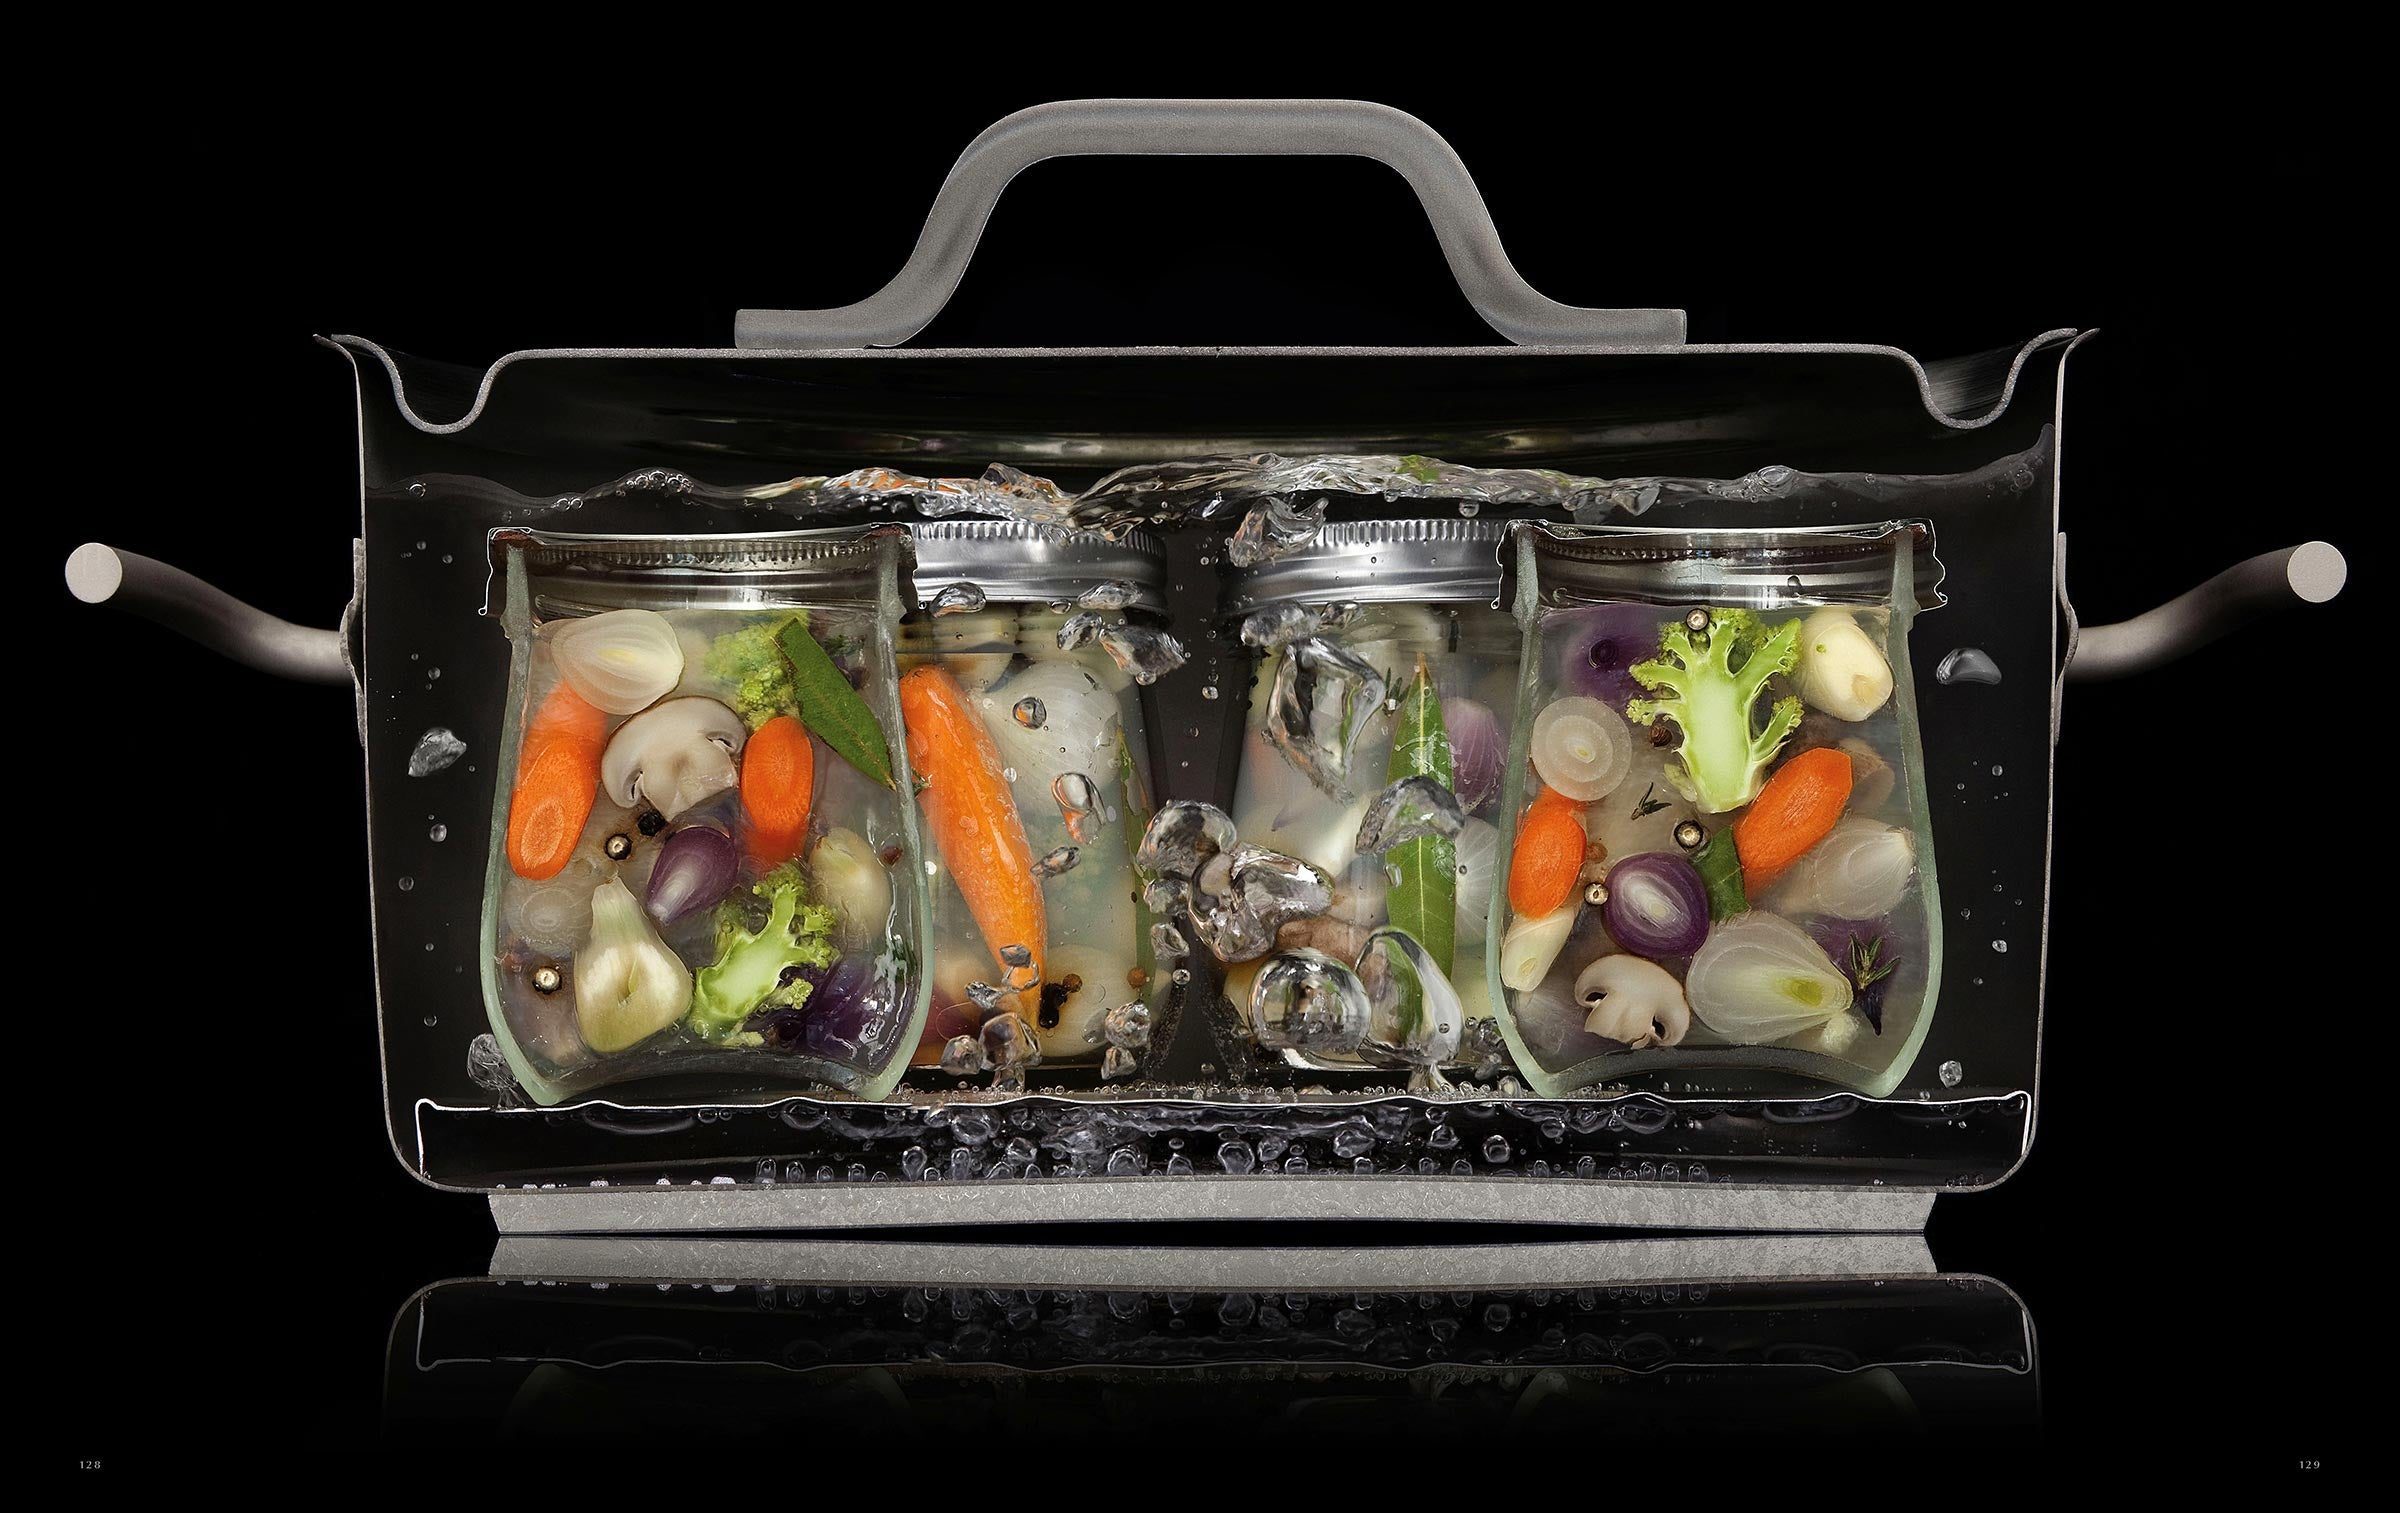 Cool pictures of food cut in half while it is cooking for Modernist cuisine ou on food and cooking